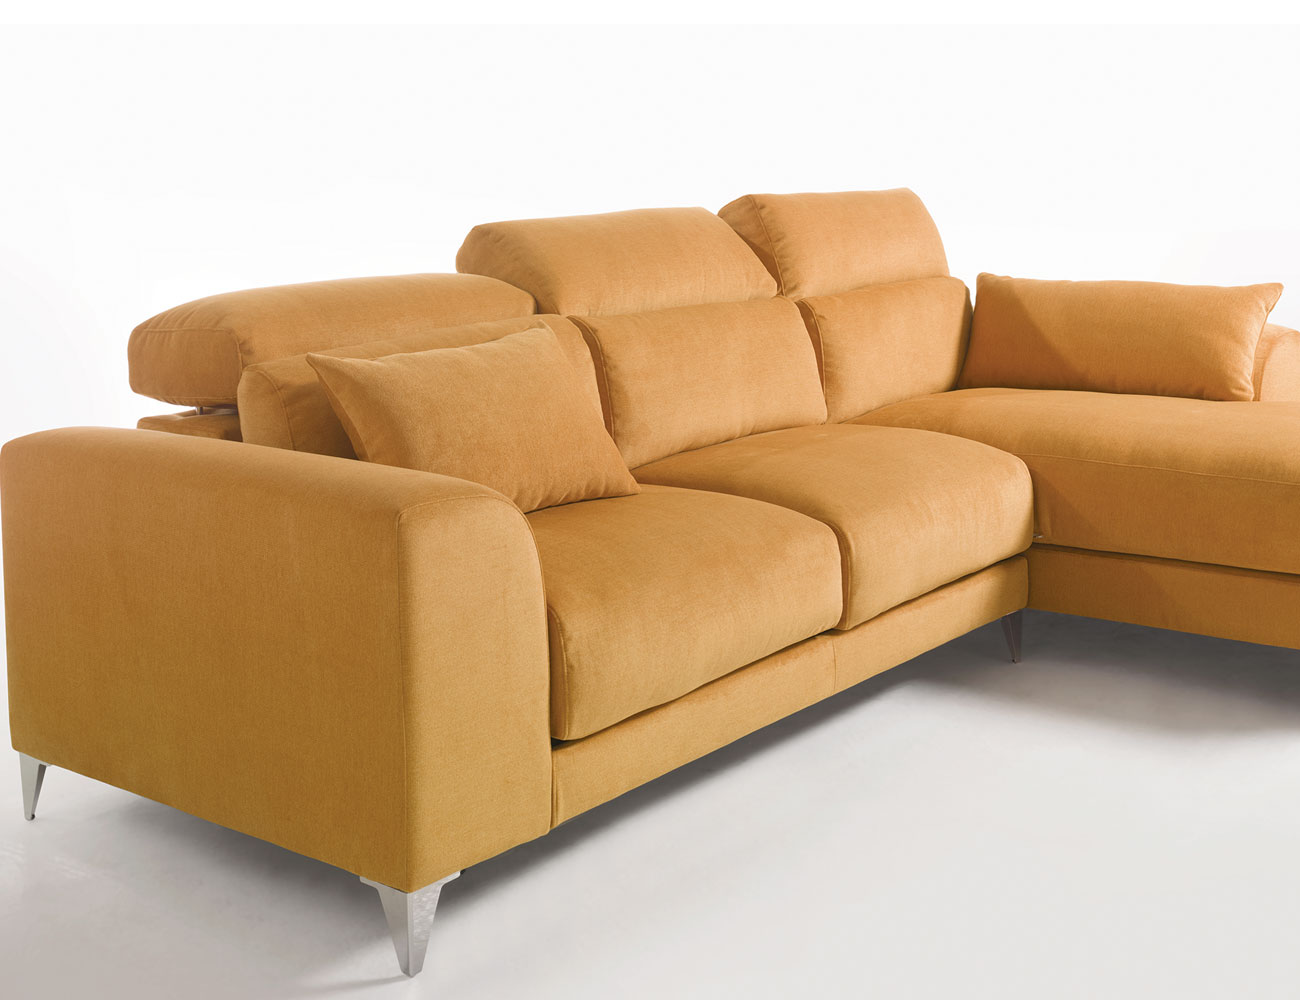 Sofa chaiselongue gran lujo decorativo patas altas amarillo 216